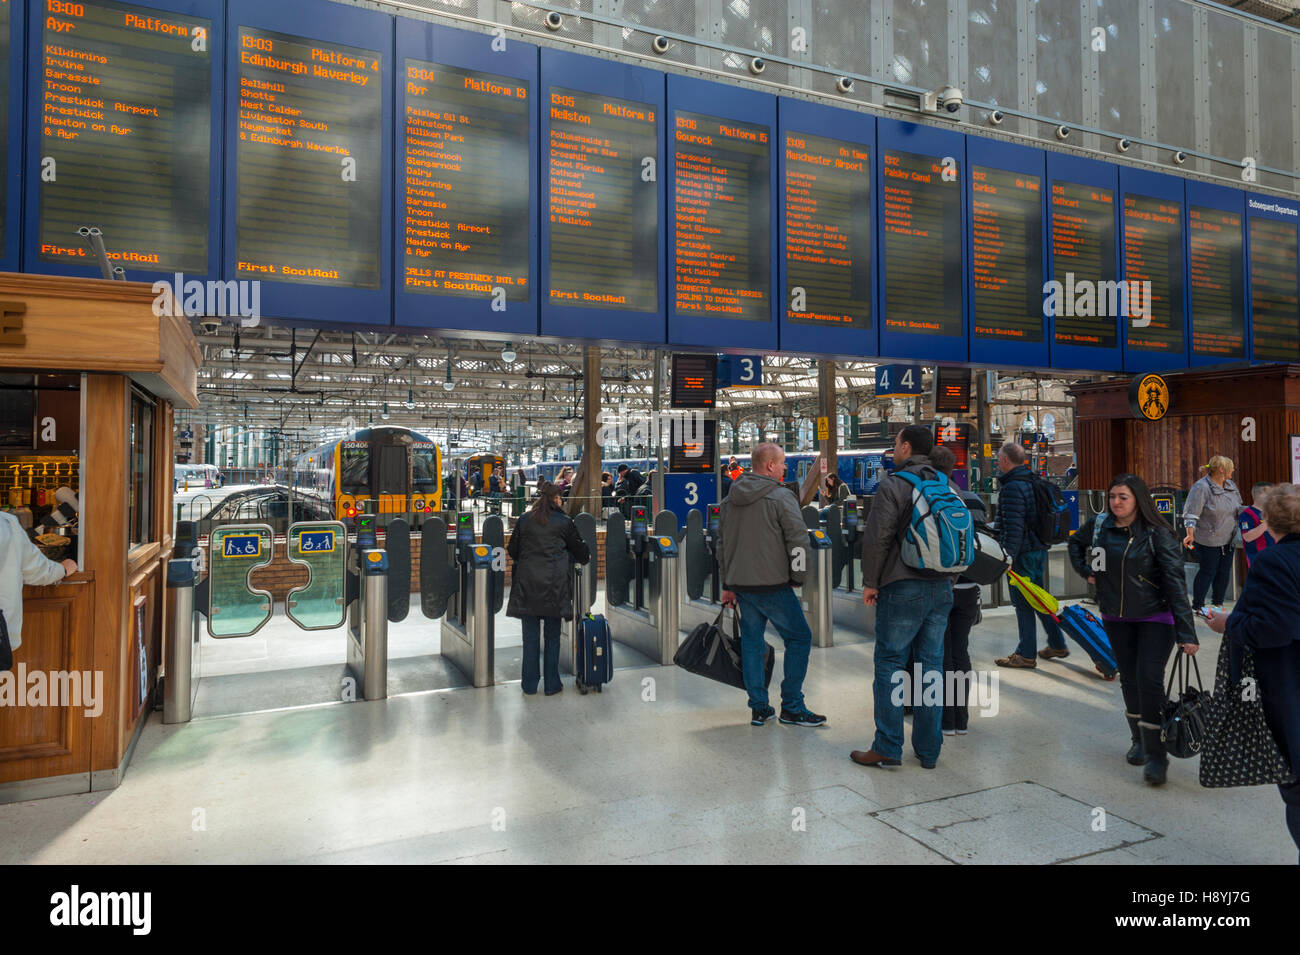 The new train information board in Glasgow central station - Stock Image